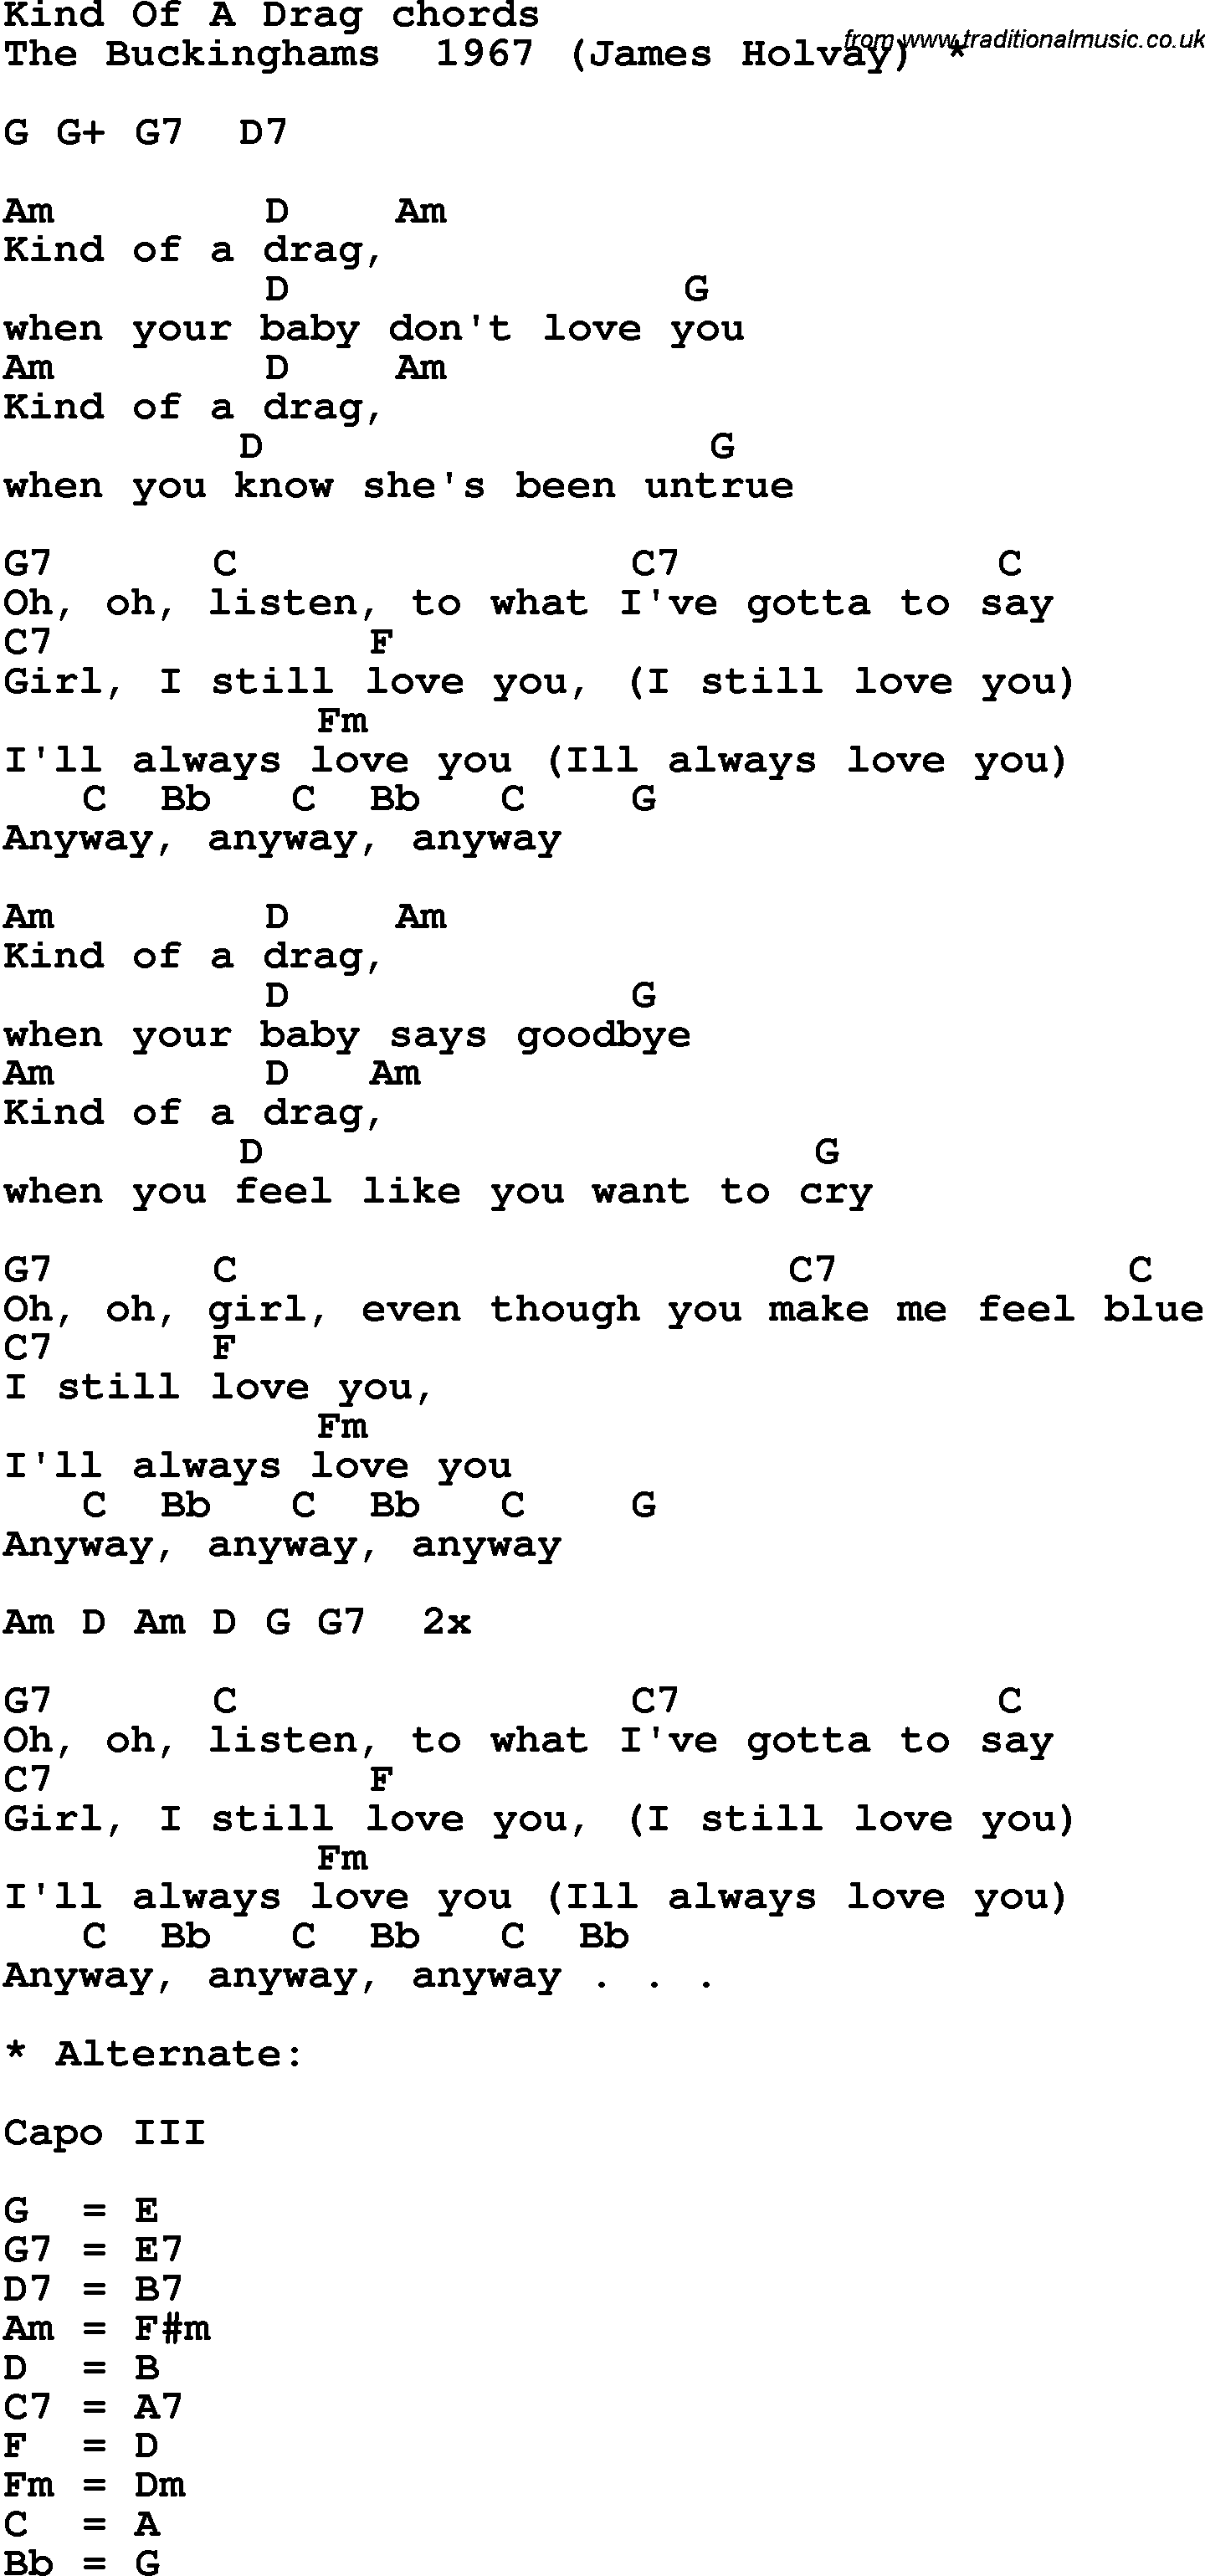 Song Lyrics With Guitar Chords For Kind Of A Drag